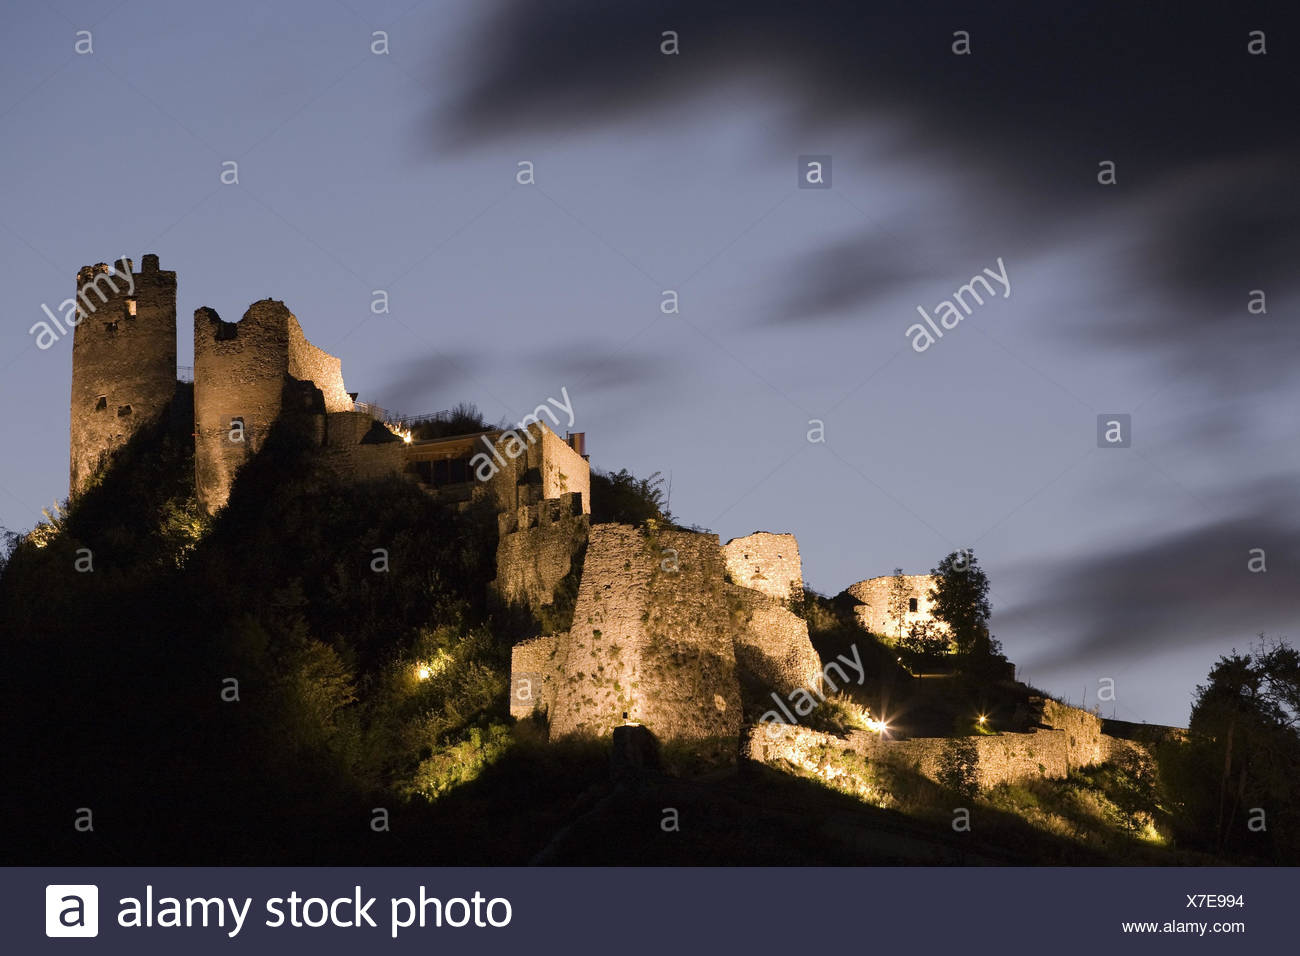 Austria, Carinthia, to grips, castle to grips, evening, - Stock Image